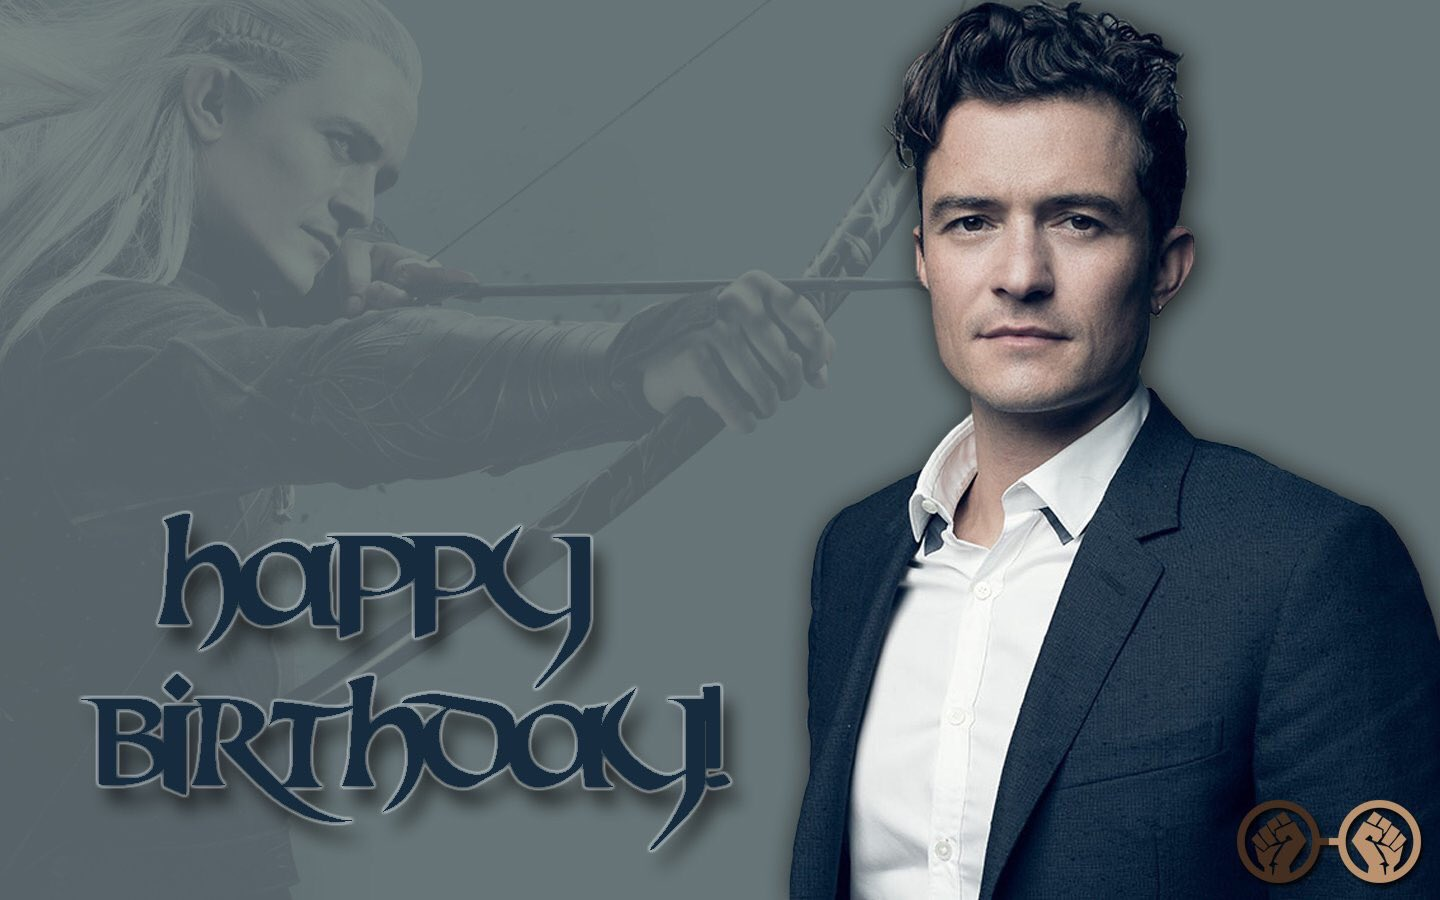 Happy Birthday wishes go out to Orlando Bloom! The actor who gave us our beloved on-screen Legolas turns 41 today!